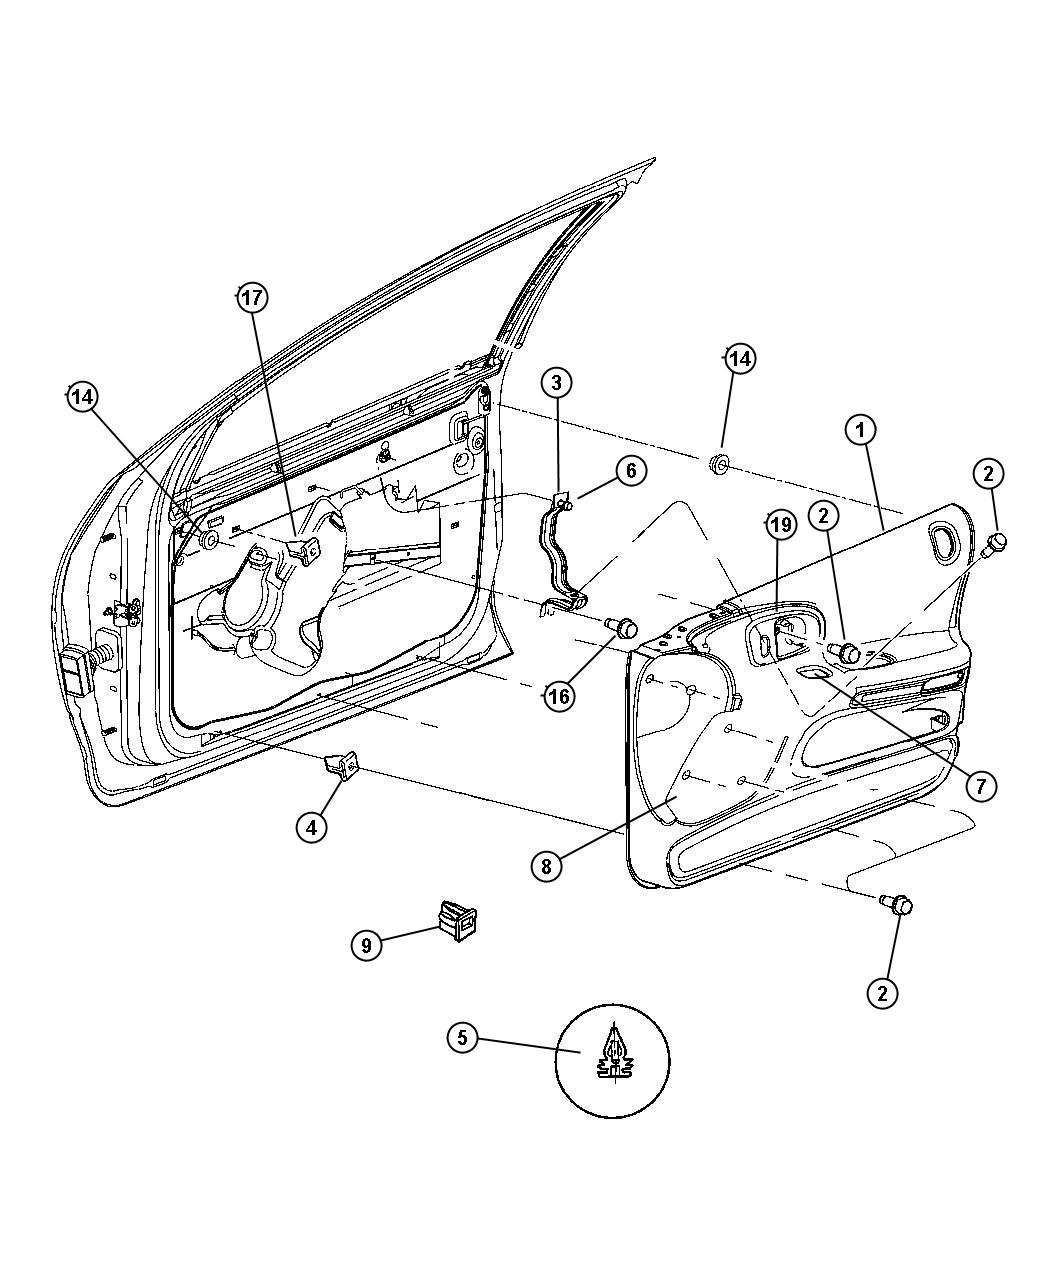 2007 Chrysler 300 Car Stereo Wiring Diagram furthermore 161059254932 likewise ShowAssembly additionally 267986 Hey All First Post Upgrade Question in addition 191526423551. on chrysler 300 speakers